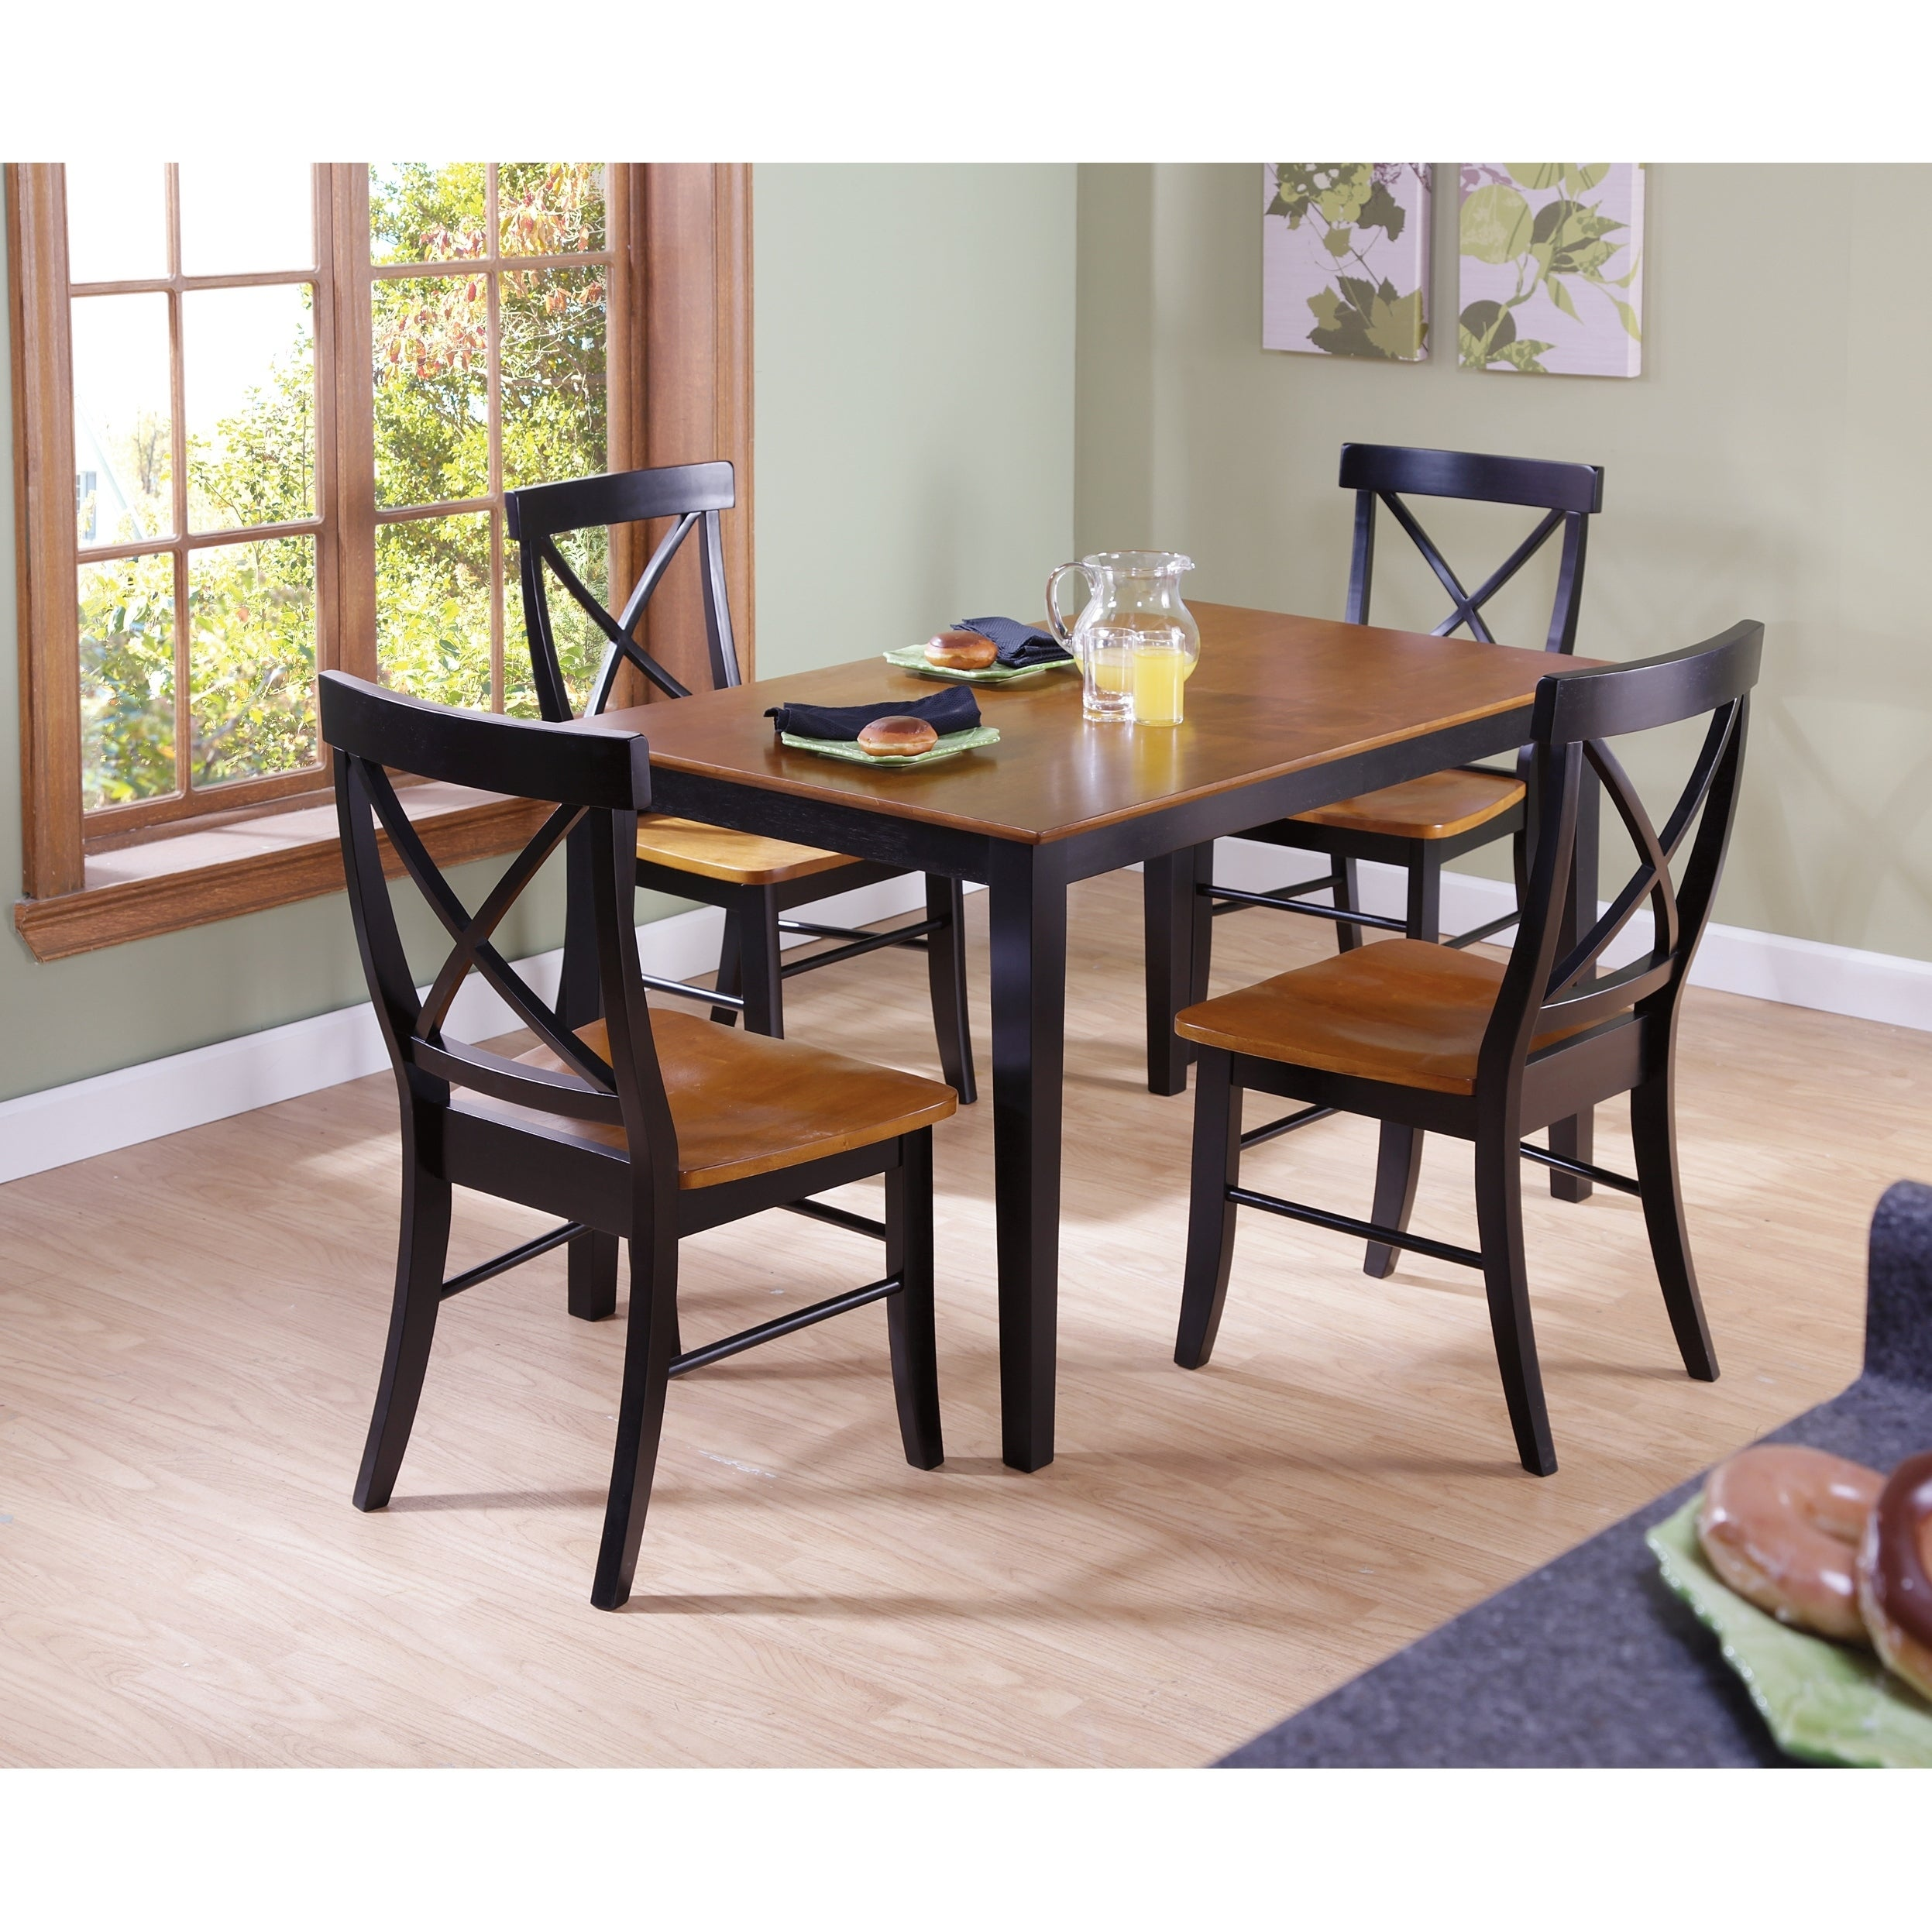 Prime International Concepts 30 X 48 Dining Table With 4 X Back Chairs Set Of 5 Andrewgaddart Wooden Chair Designs For Living Room Andrewgaddartcom